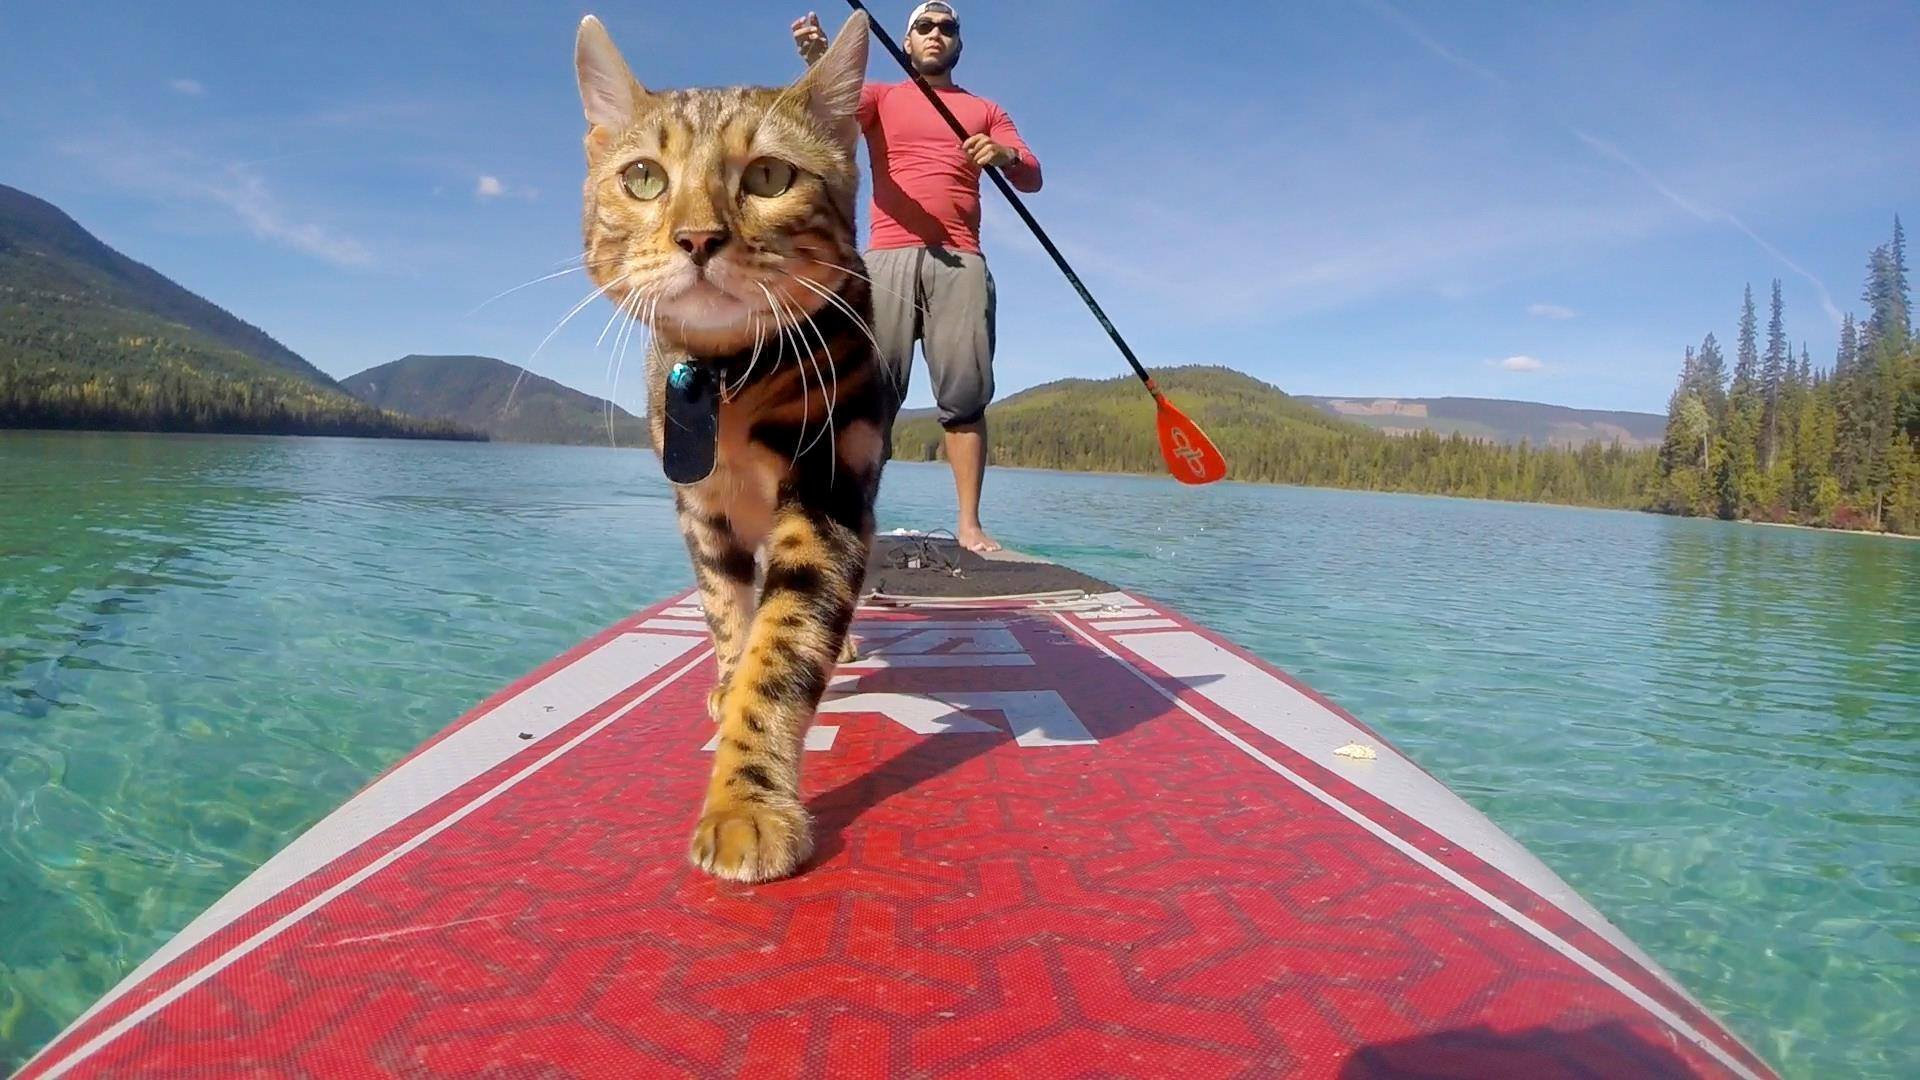 Cat lives his best life paddleboarding on some of Canada's most beautiful lakes